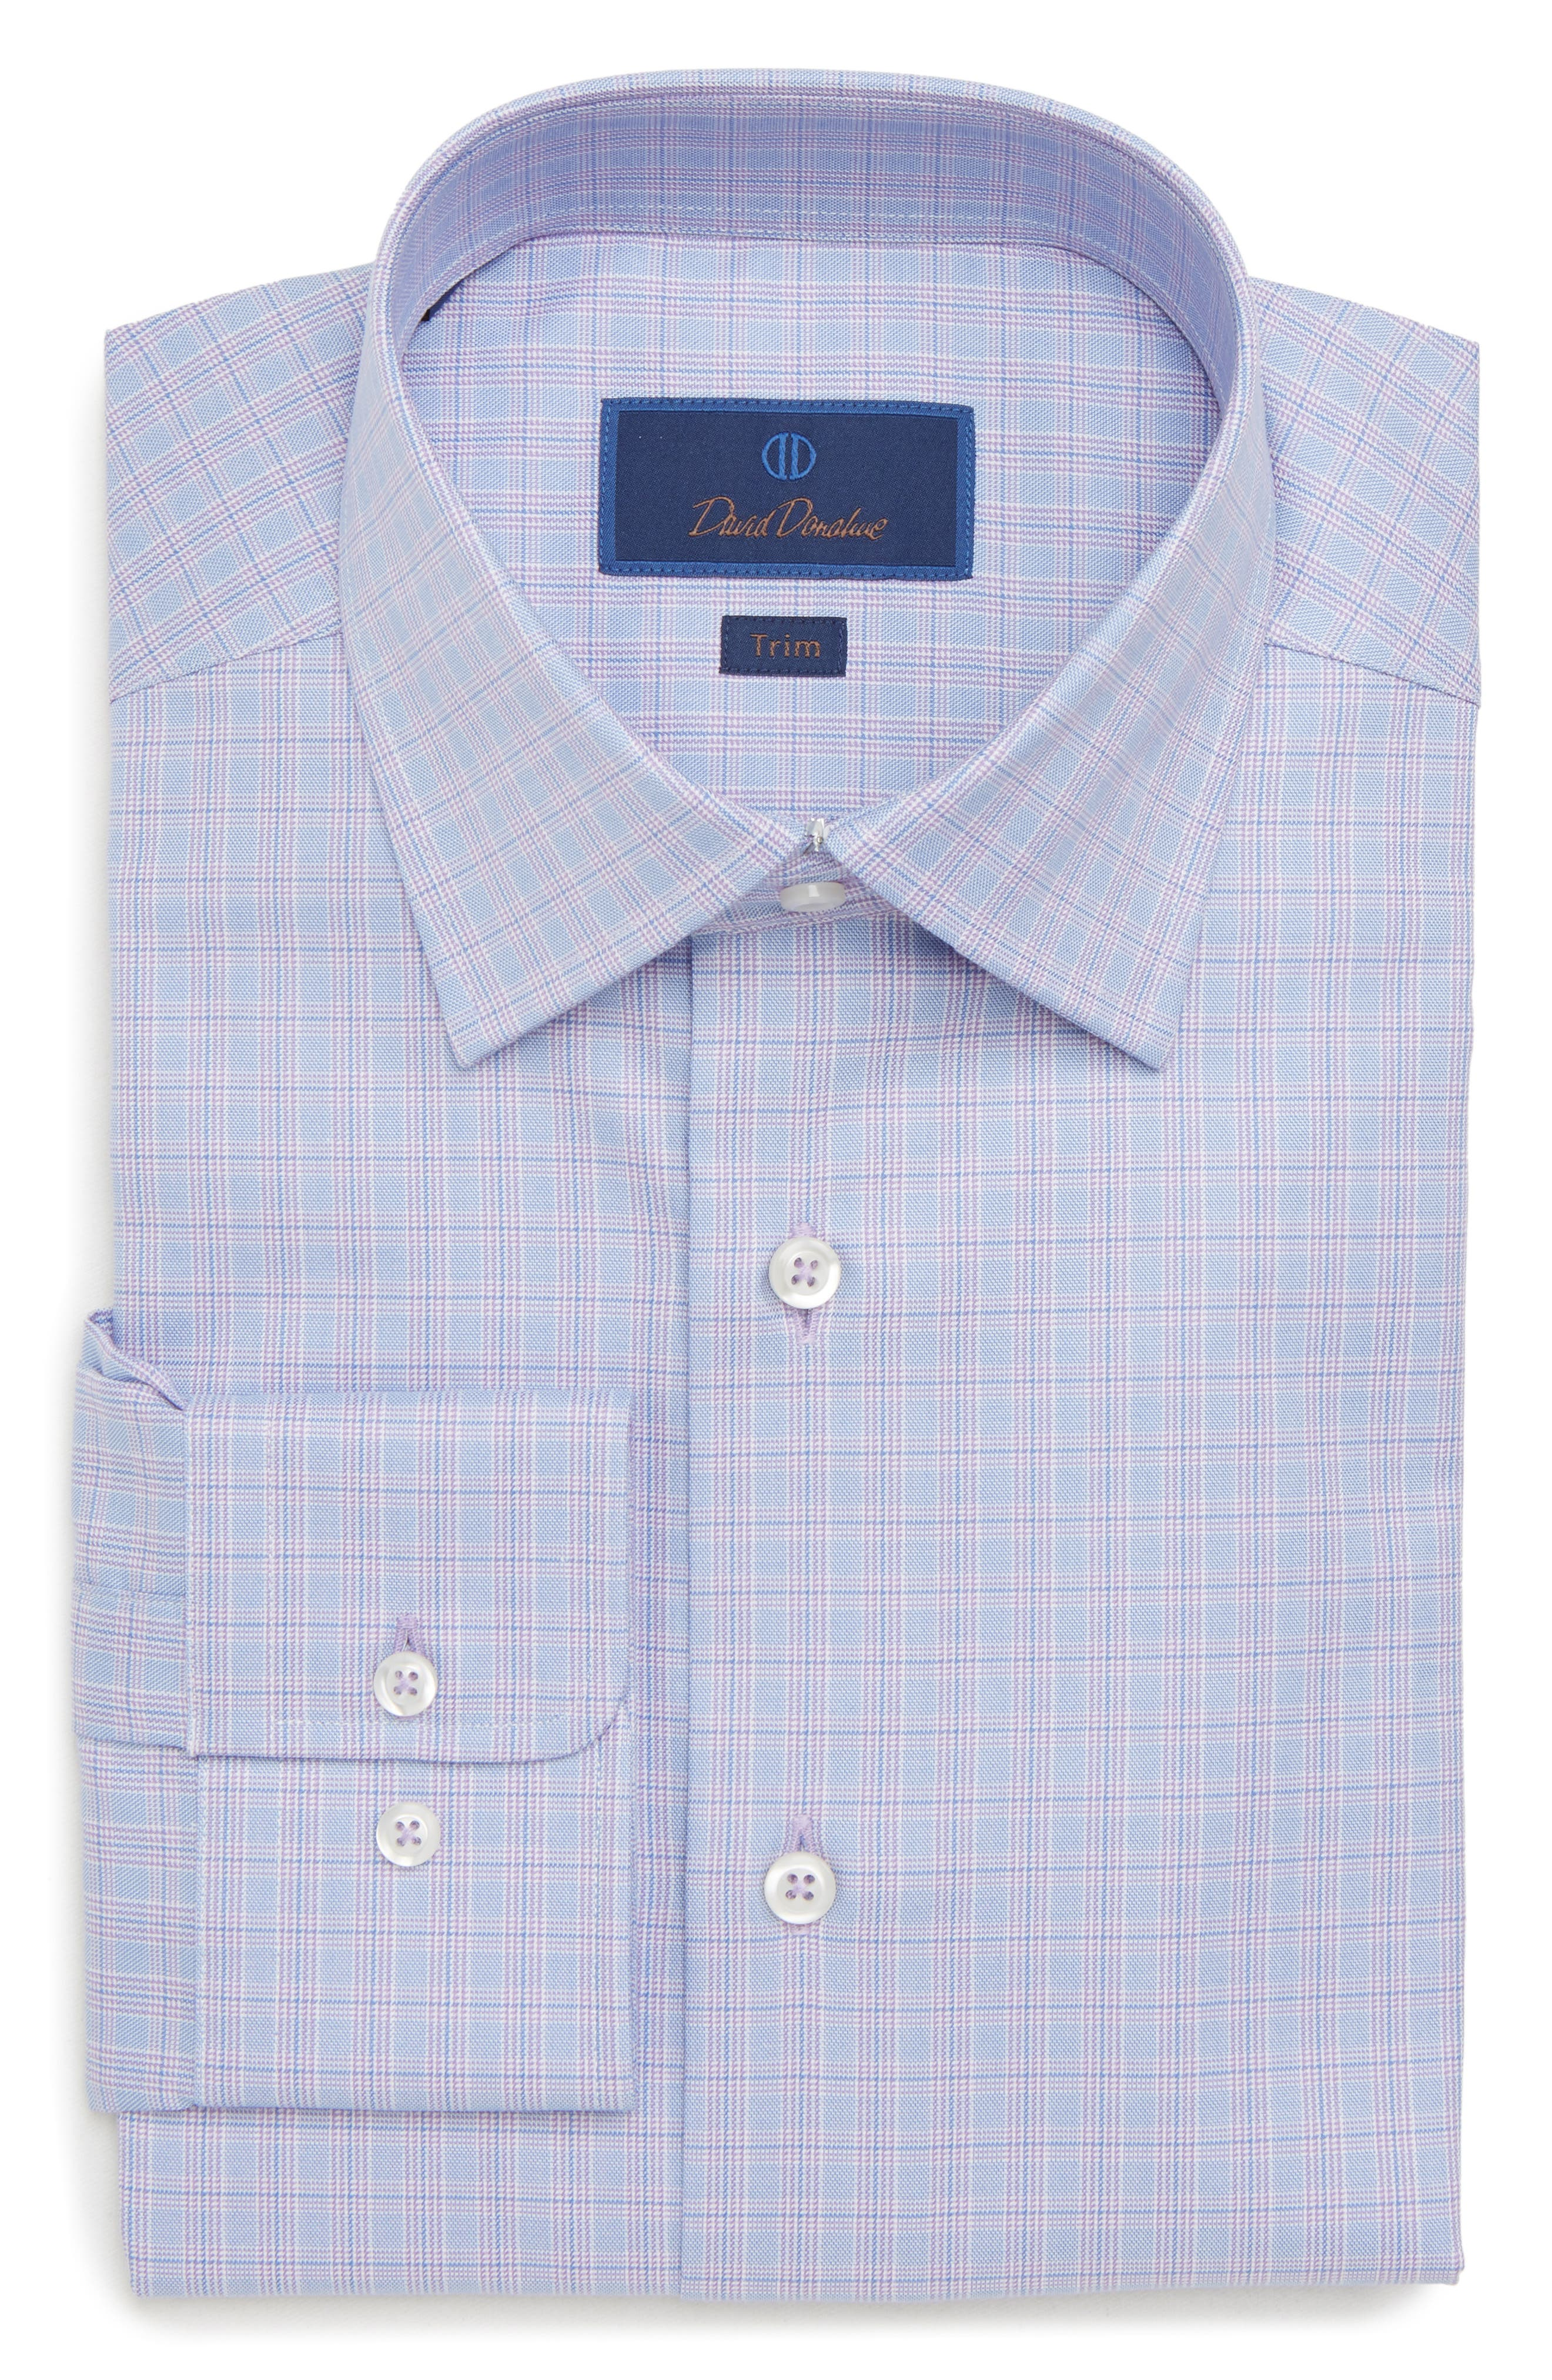 Trim Fit Plaid Dress Shirt,                             Alternate thumbnail 5, color,                             LILAC